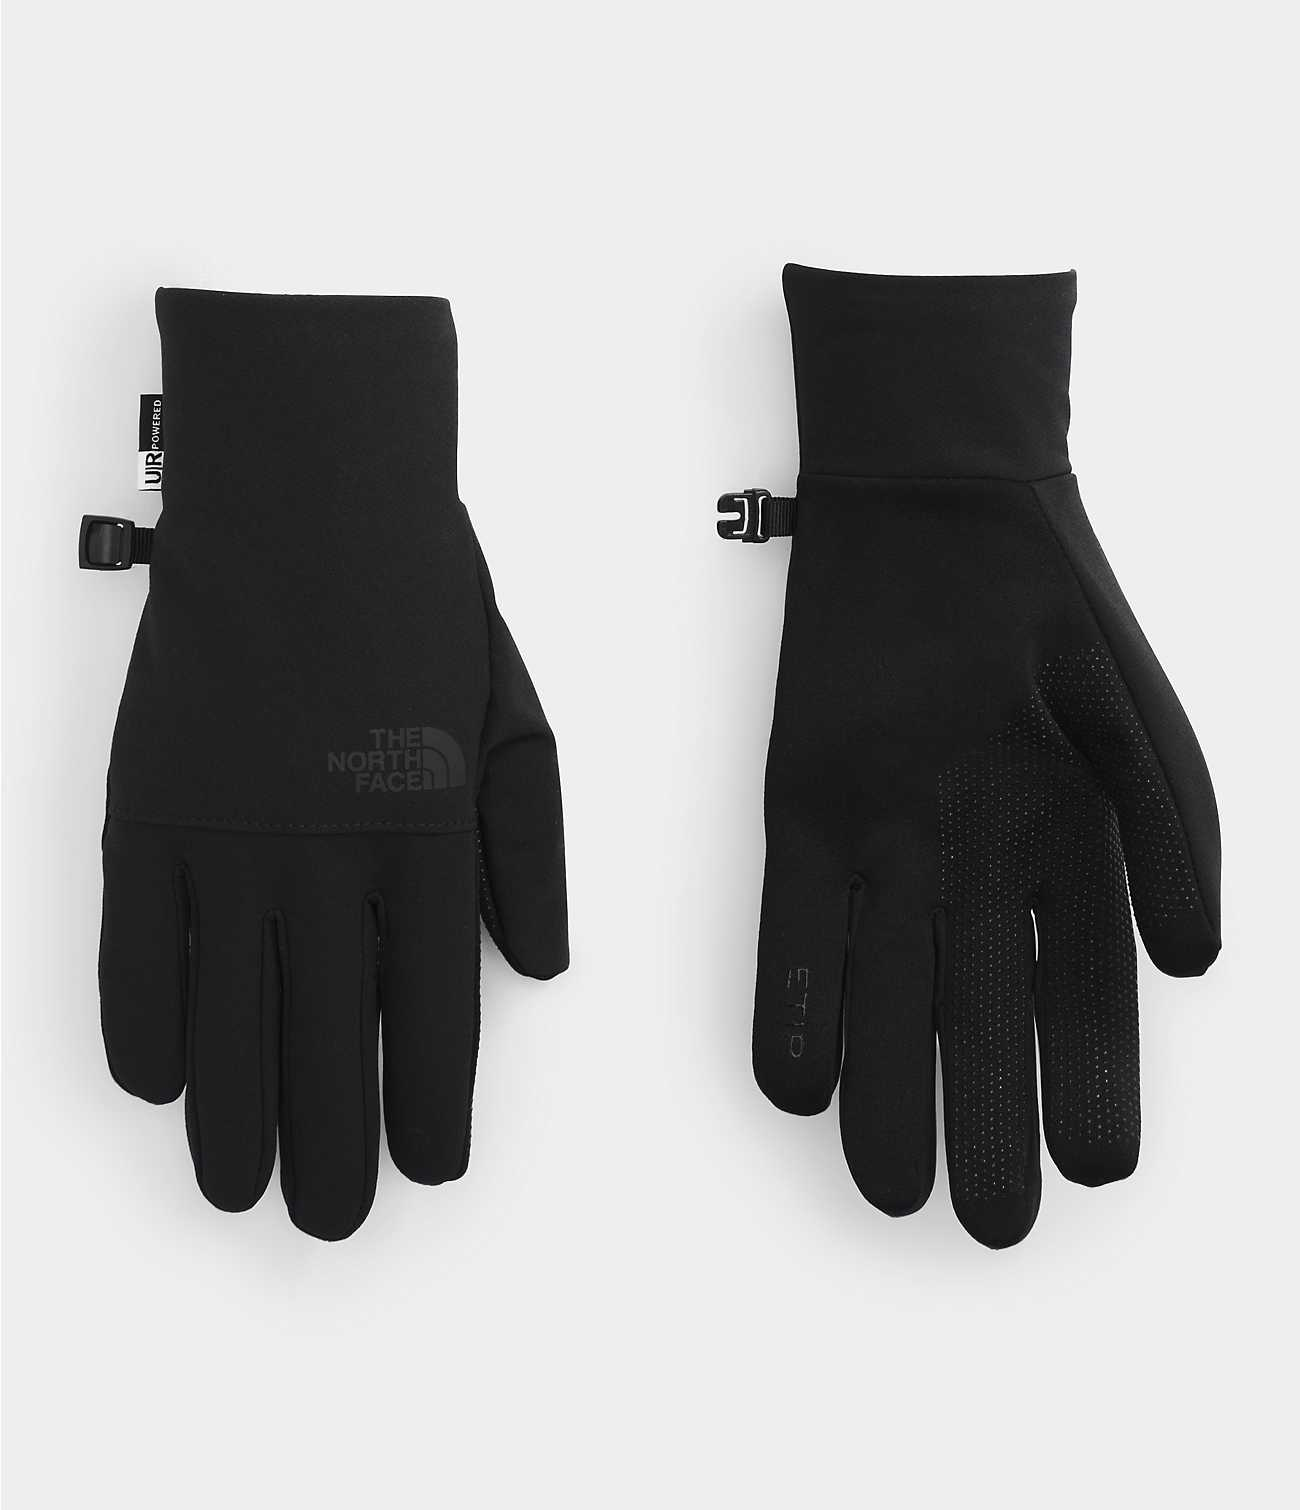 THE NORTH FACE W'S GLOVES W ETIP RECYCLED TECH GLOVE